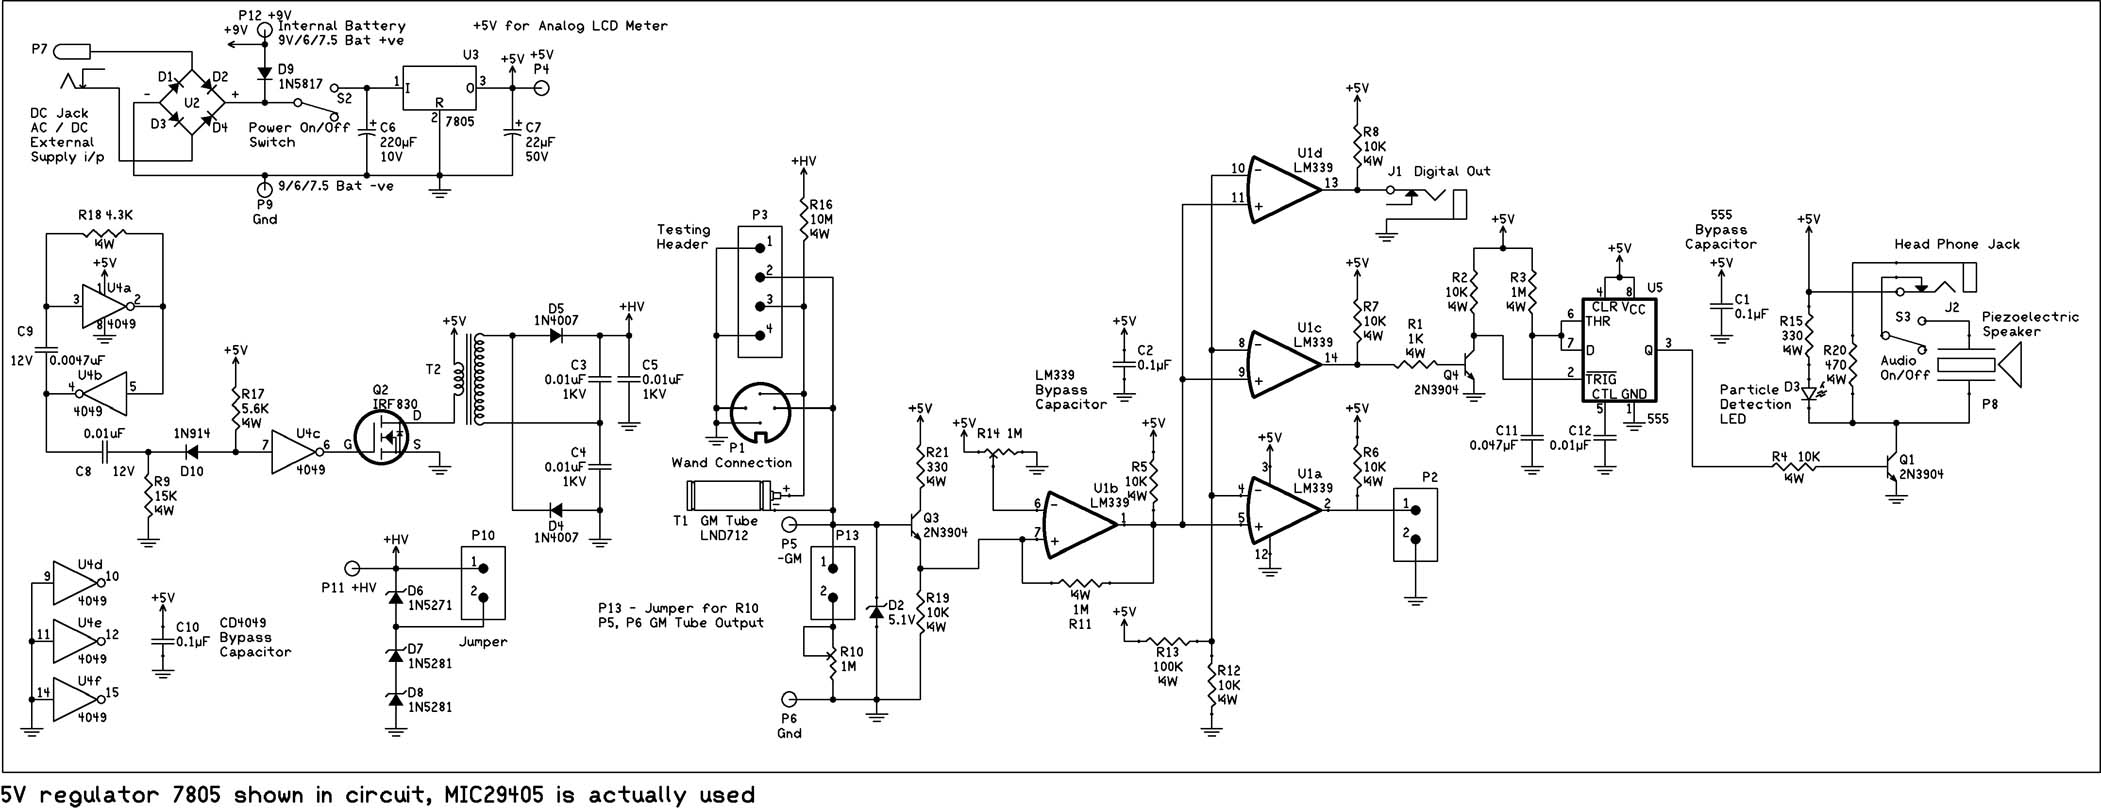 geiger counter schematics - diy geiger counter